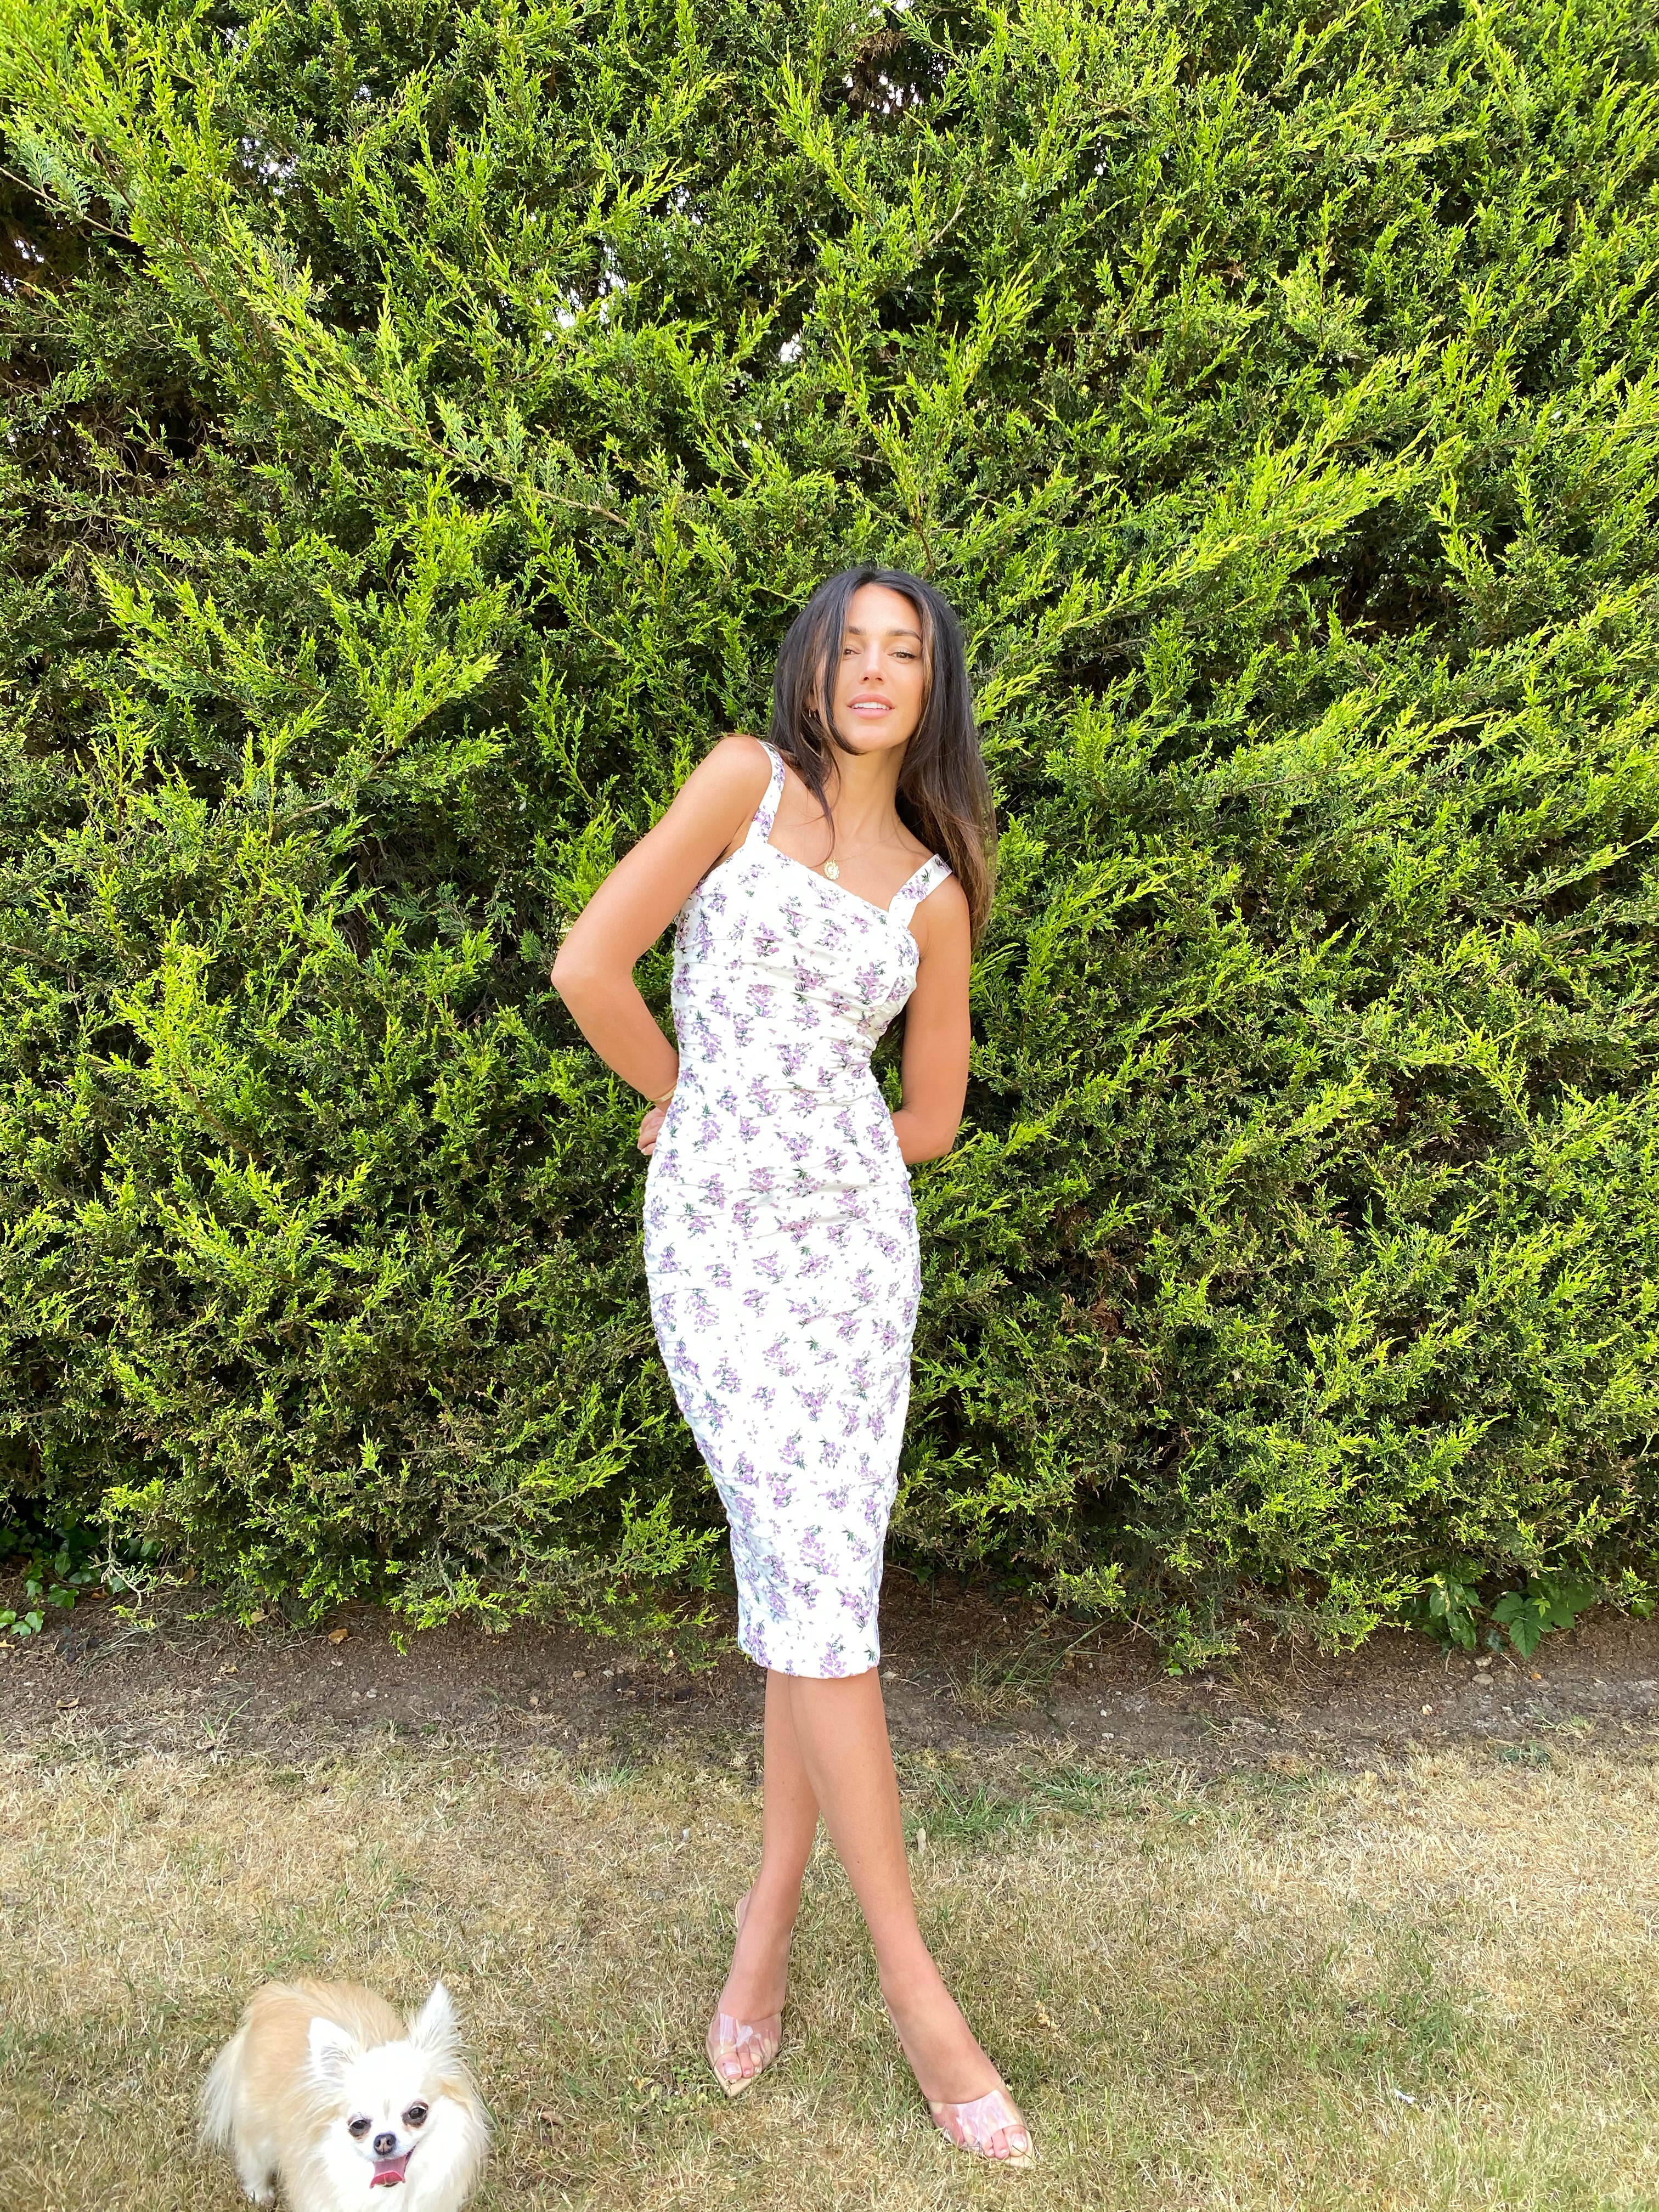 Michelle Keegan models the Ruched Stretch Bodycon Dress from her Very collection range in her garden.  (Very)